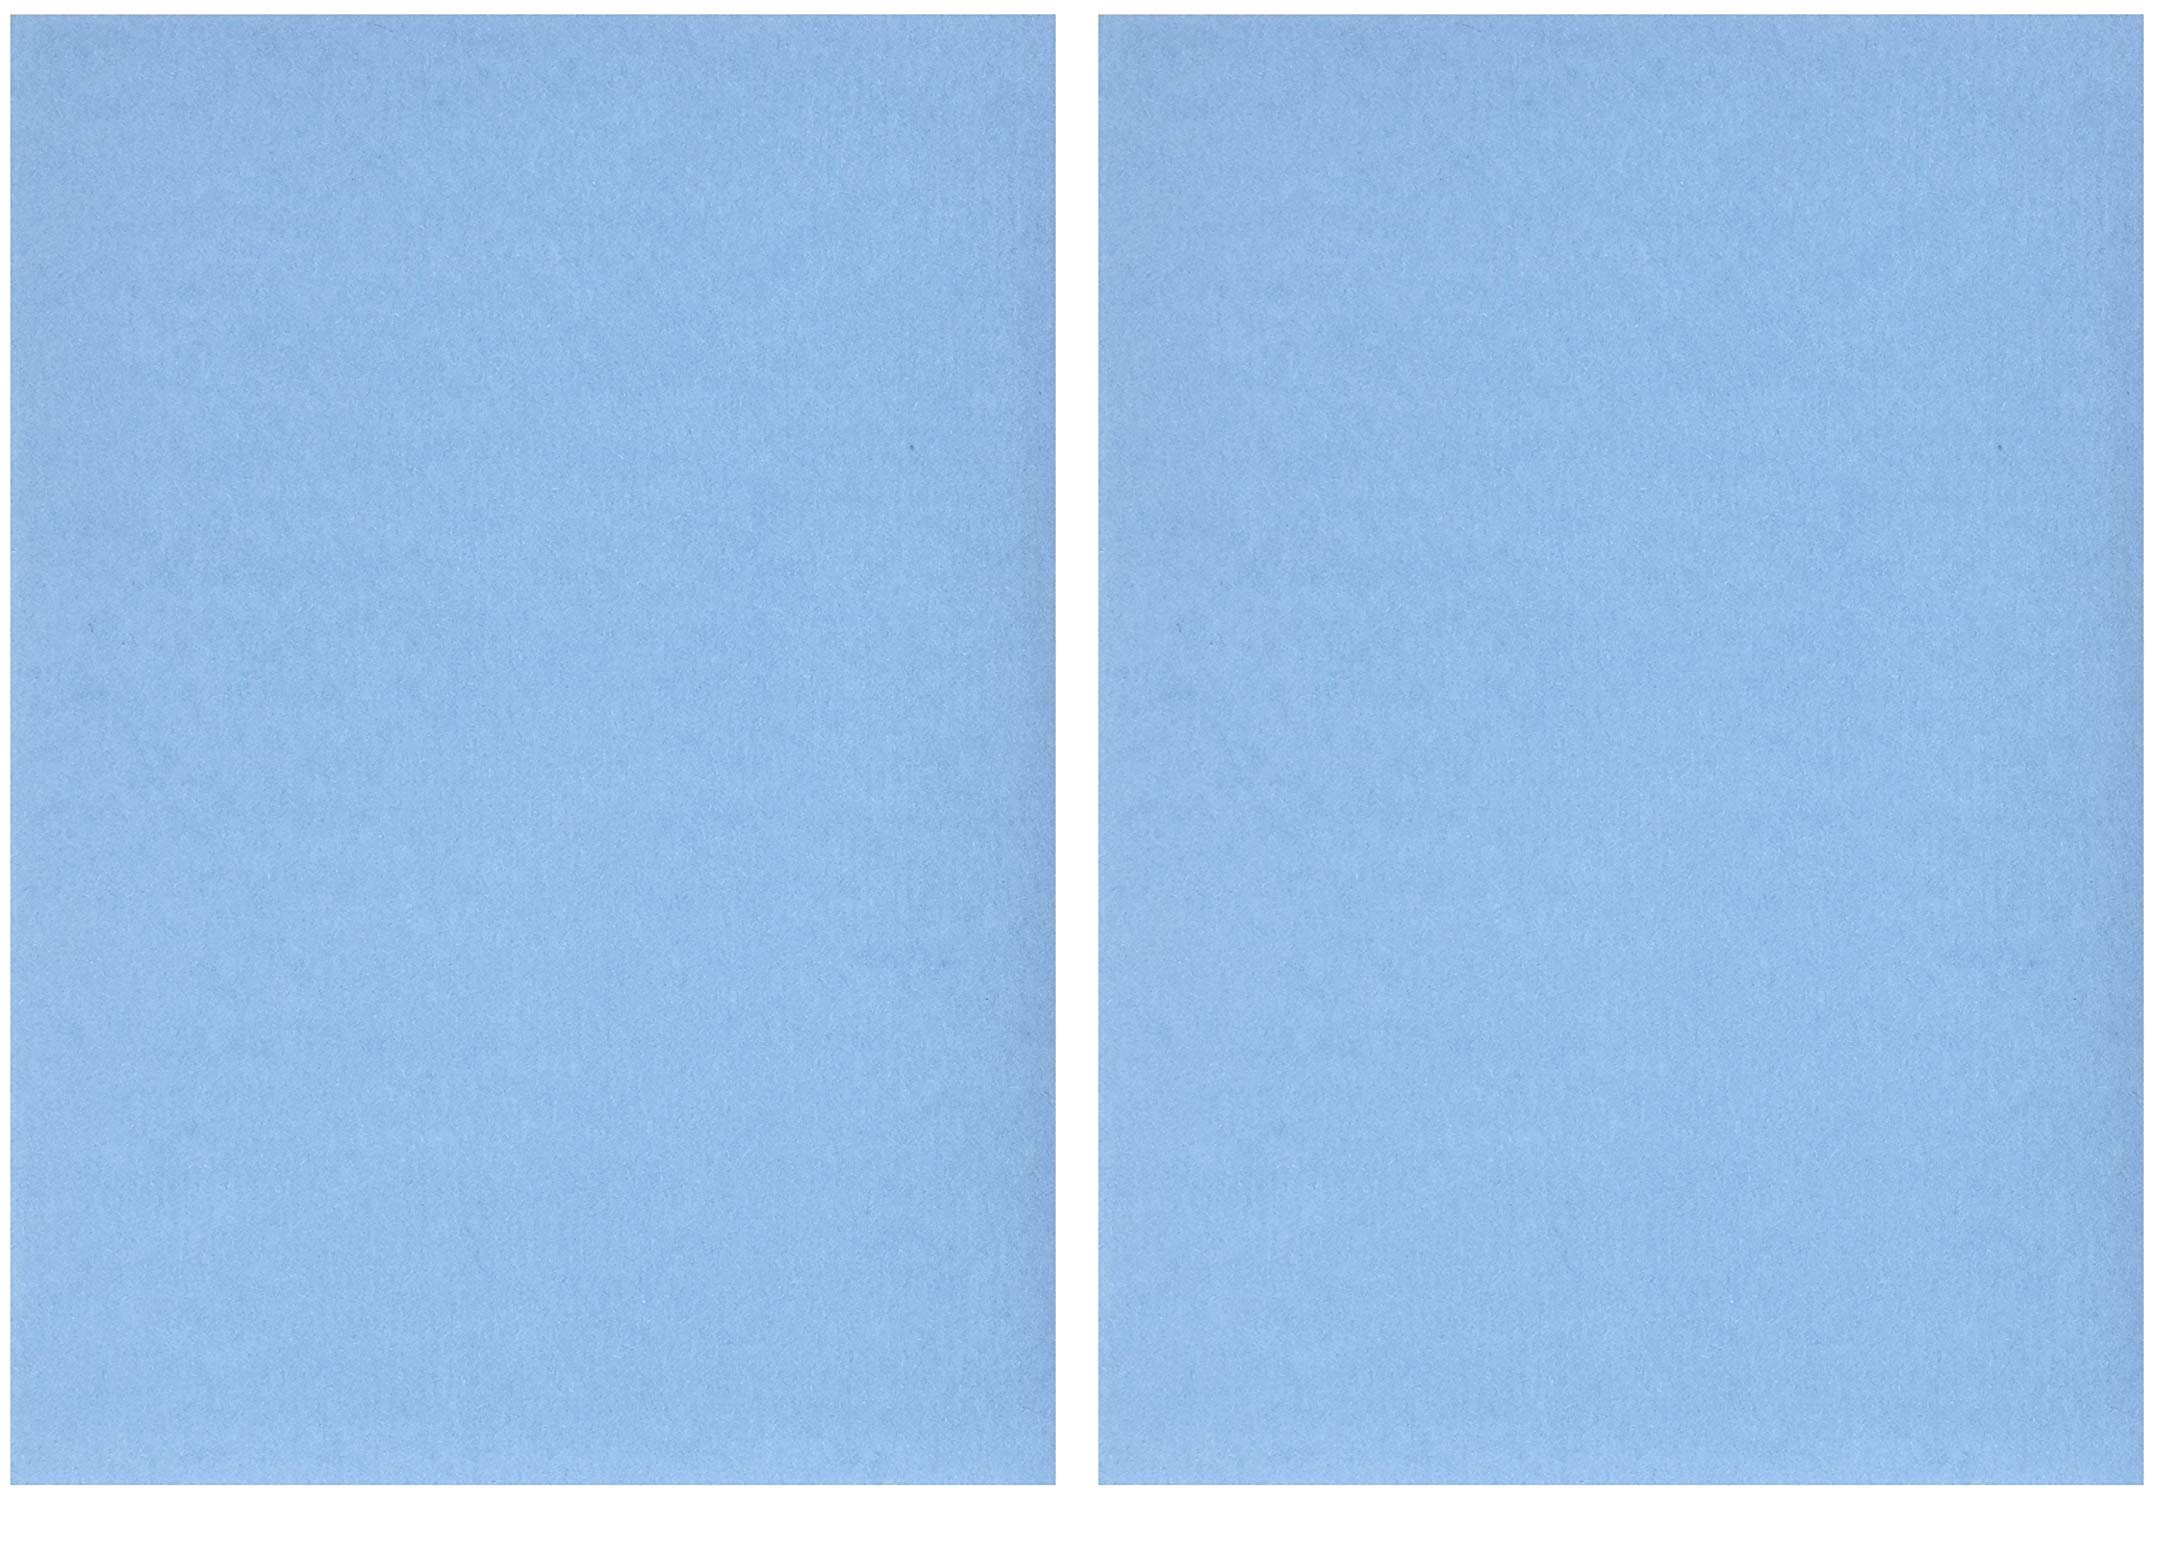 Nature Print Printing Paper, Sun Activated, 5 x 7 Inches, Pack of 40 ((Set) of 2)